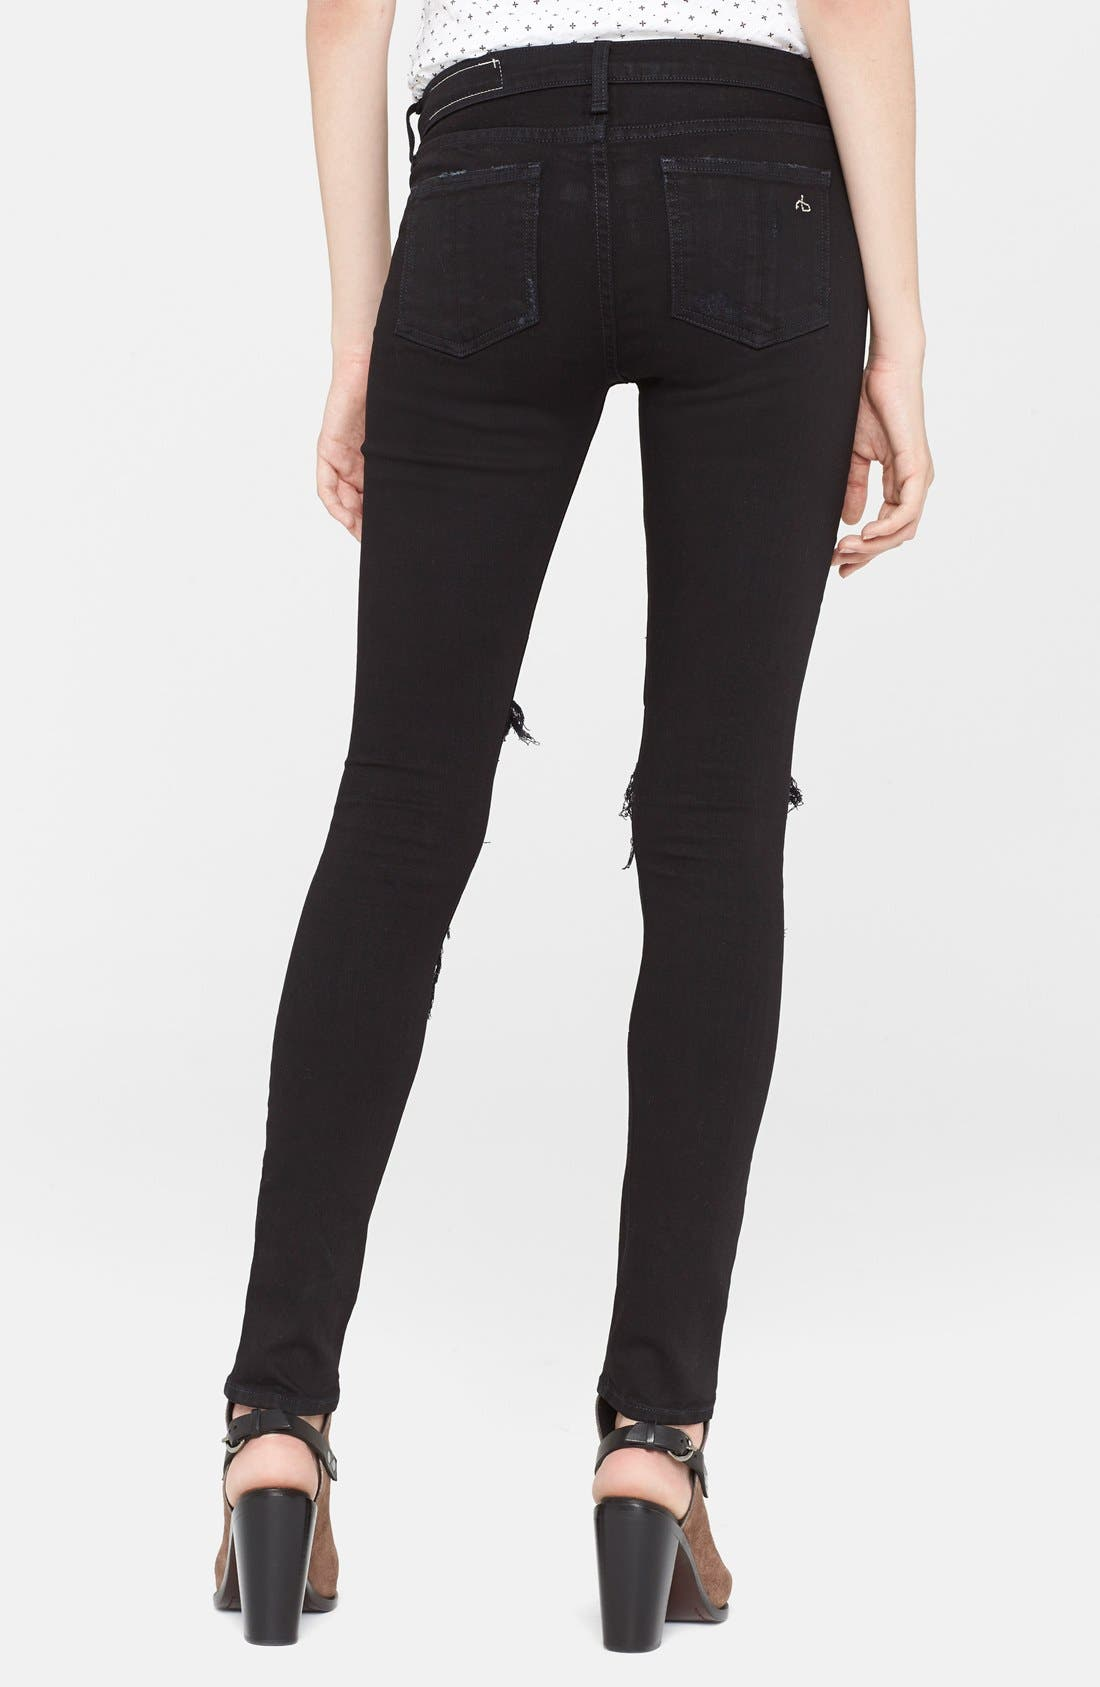 'The Skinny' Stretch Jeans,                             Main thumbnail 8, color,